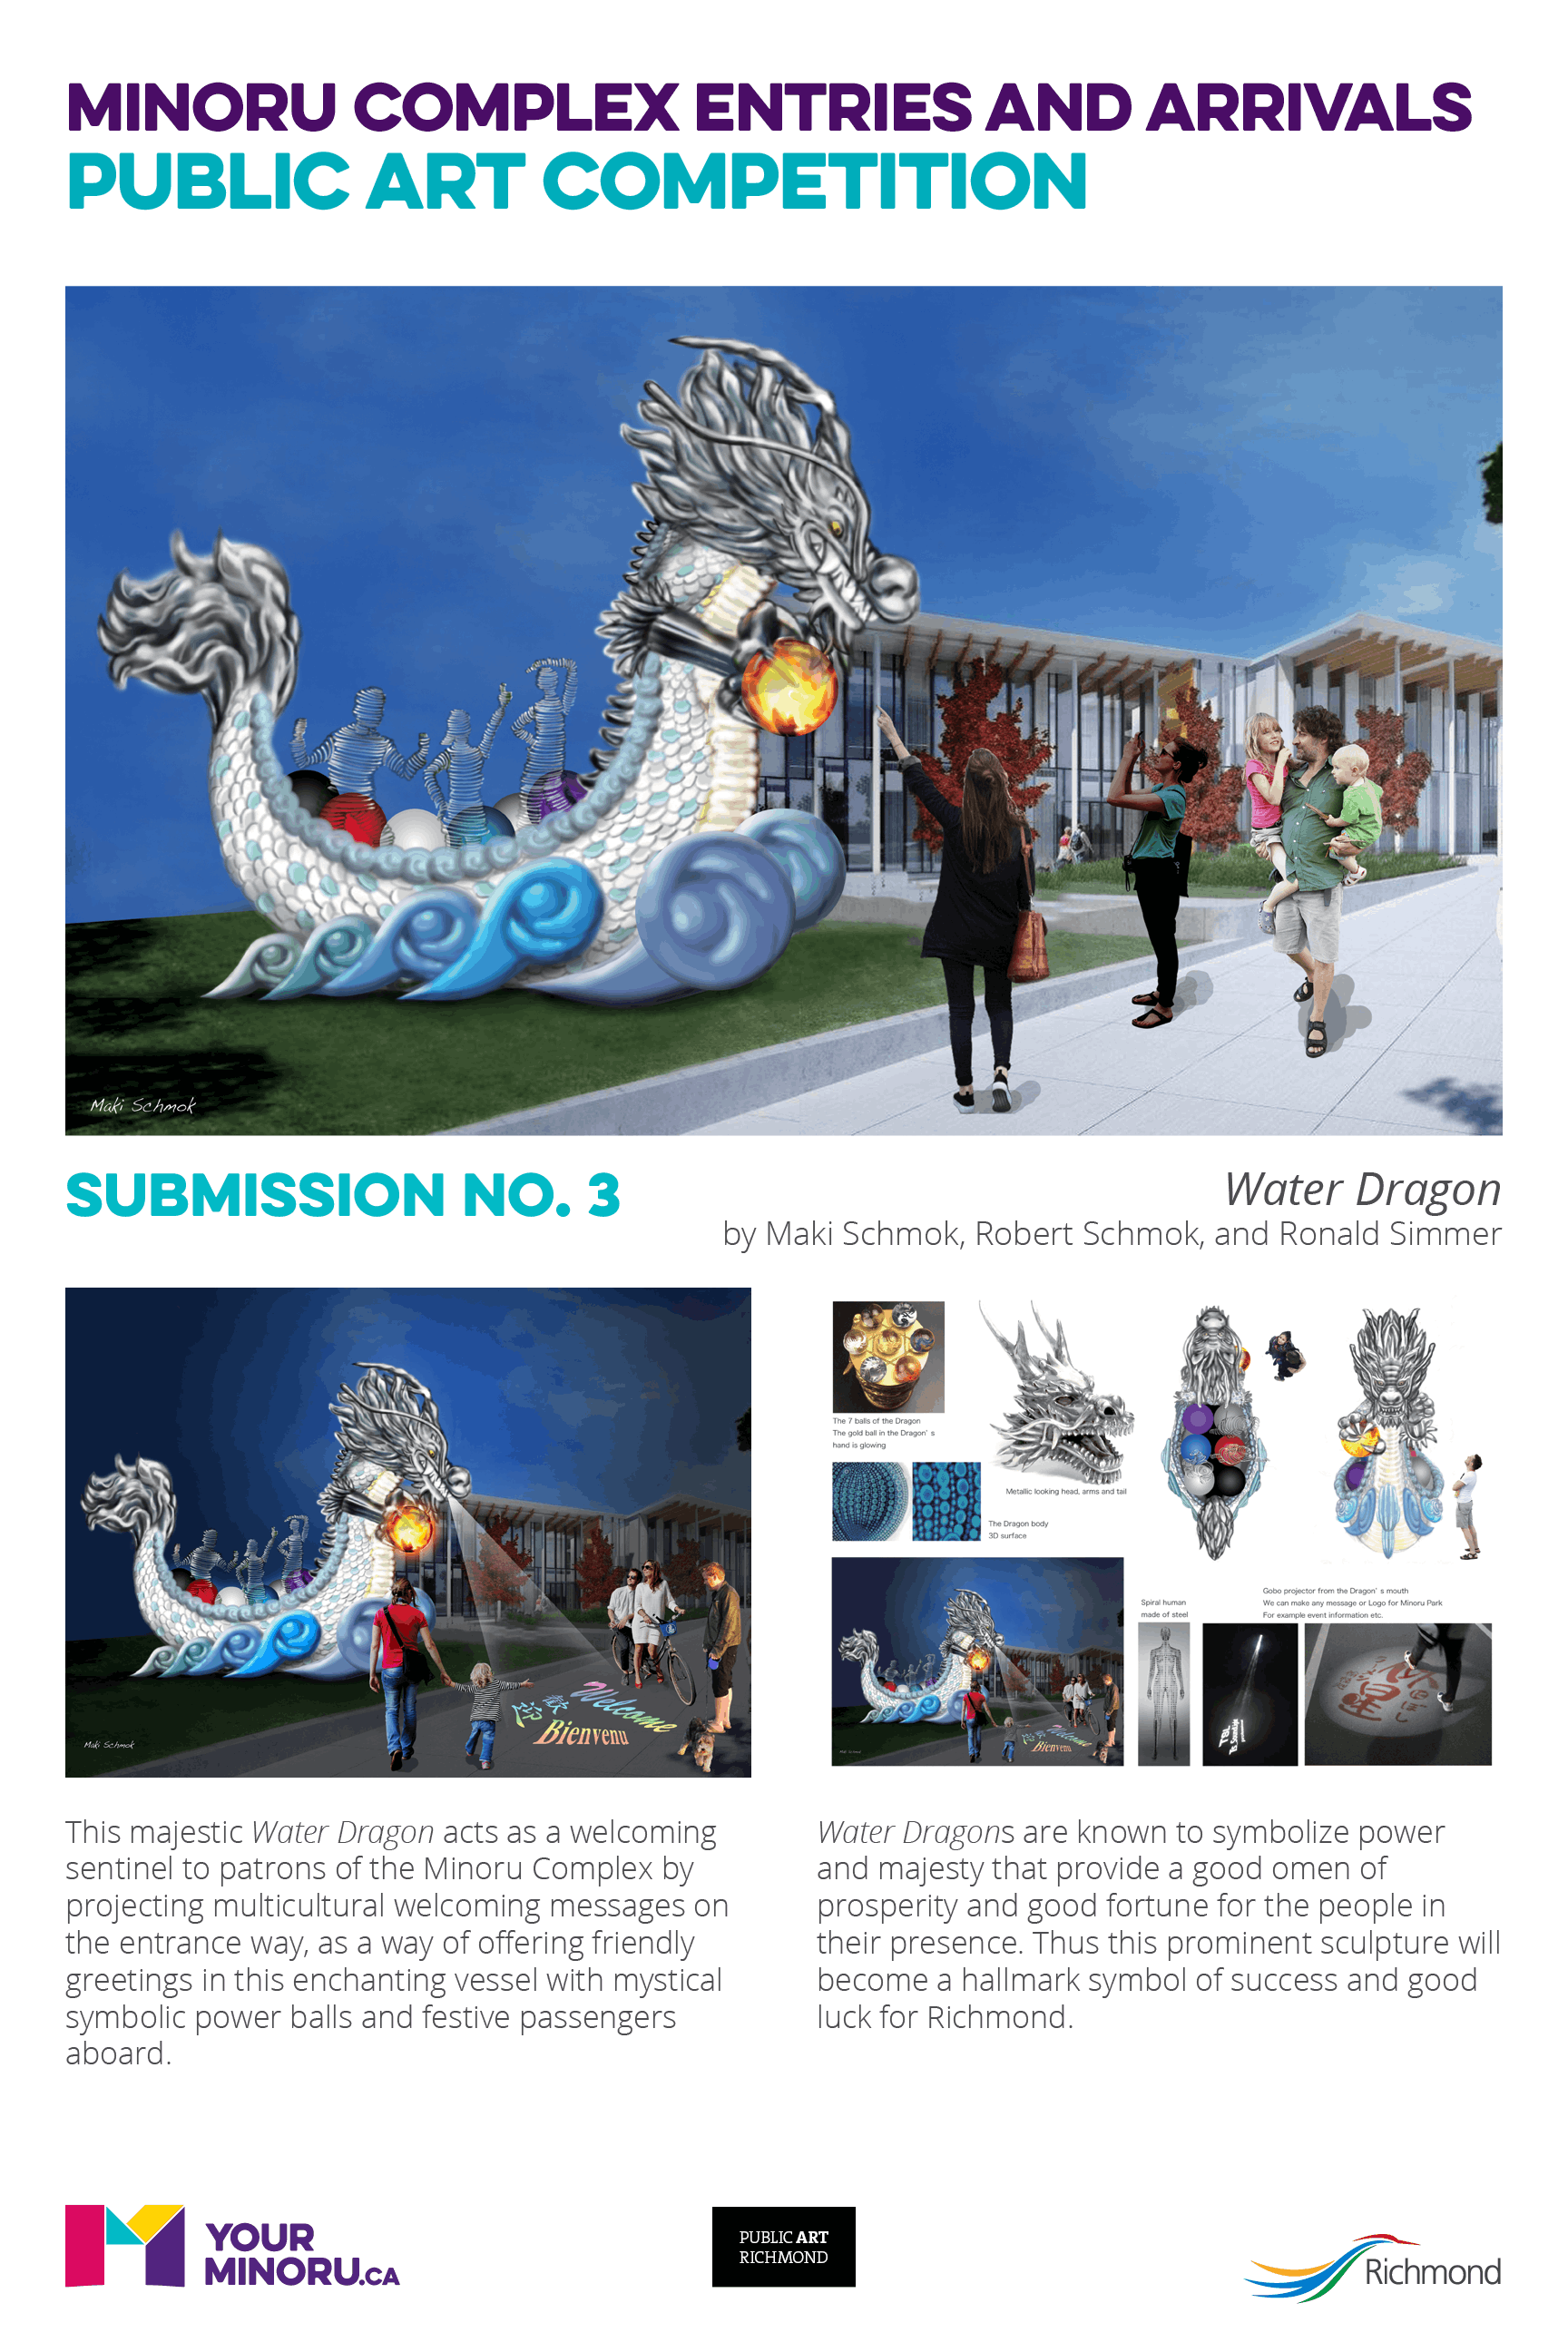 Submission No. 3 – Water Dragon, by Maki Schmok, Robert Schmok and Ronald Simmer